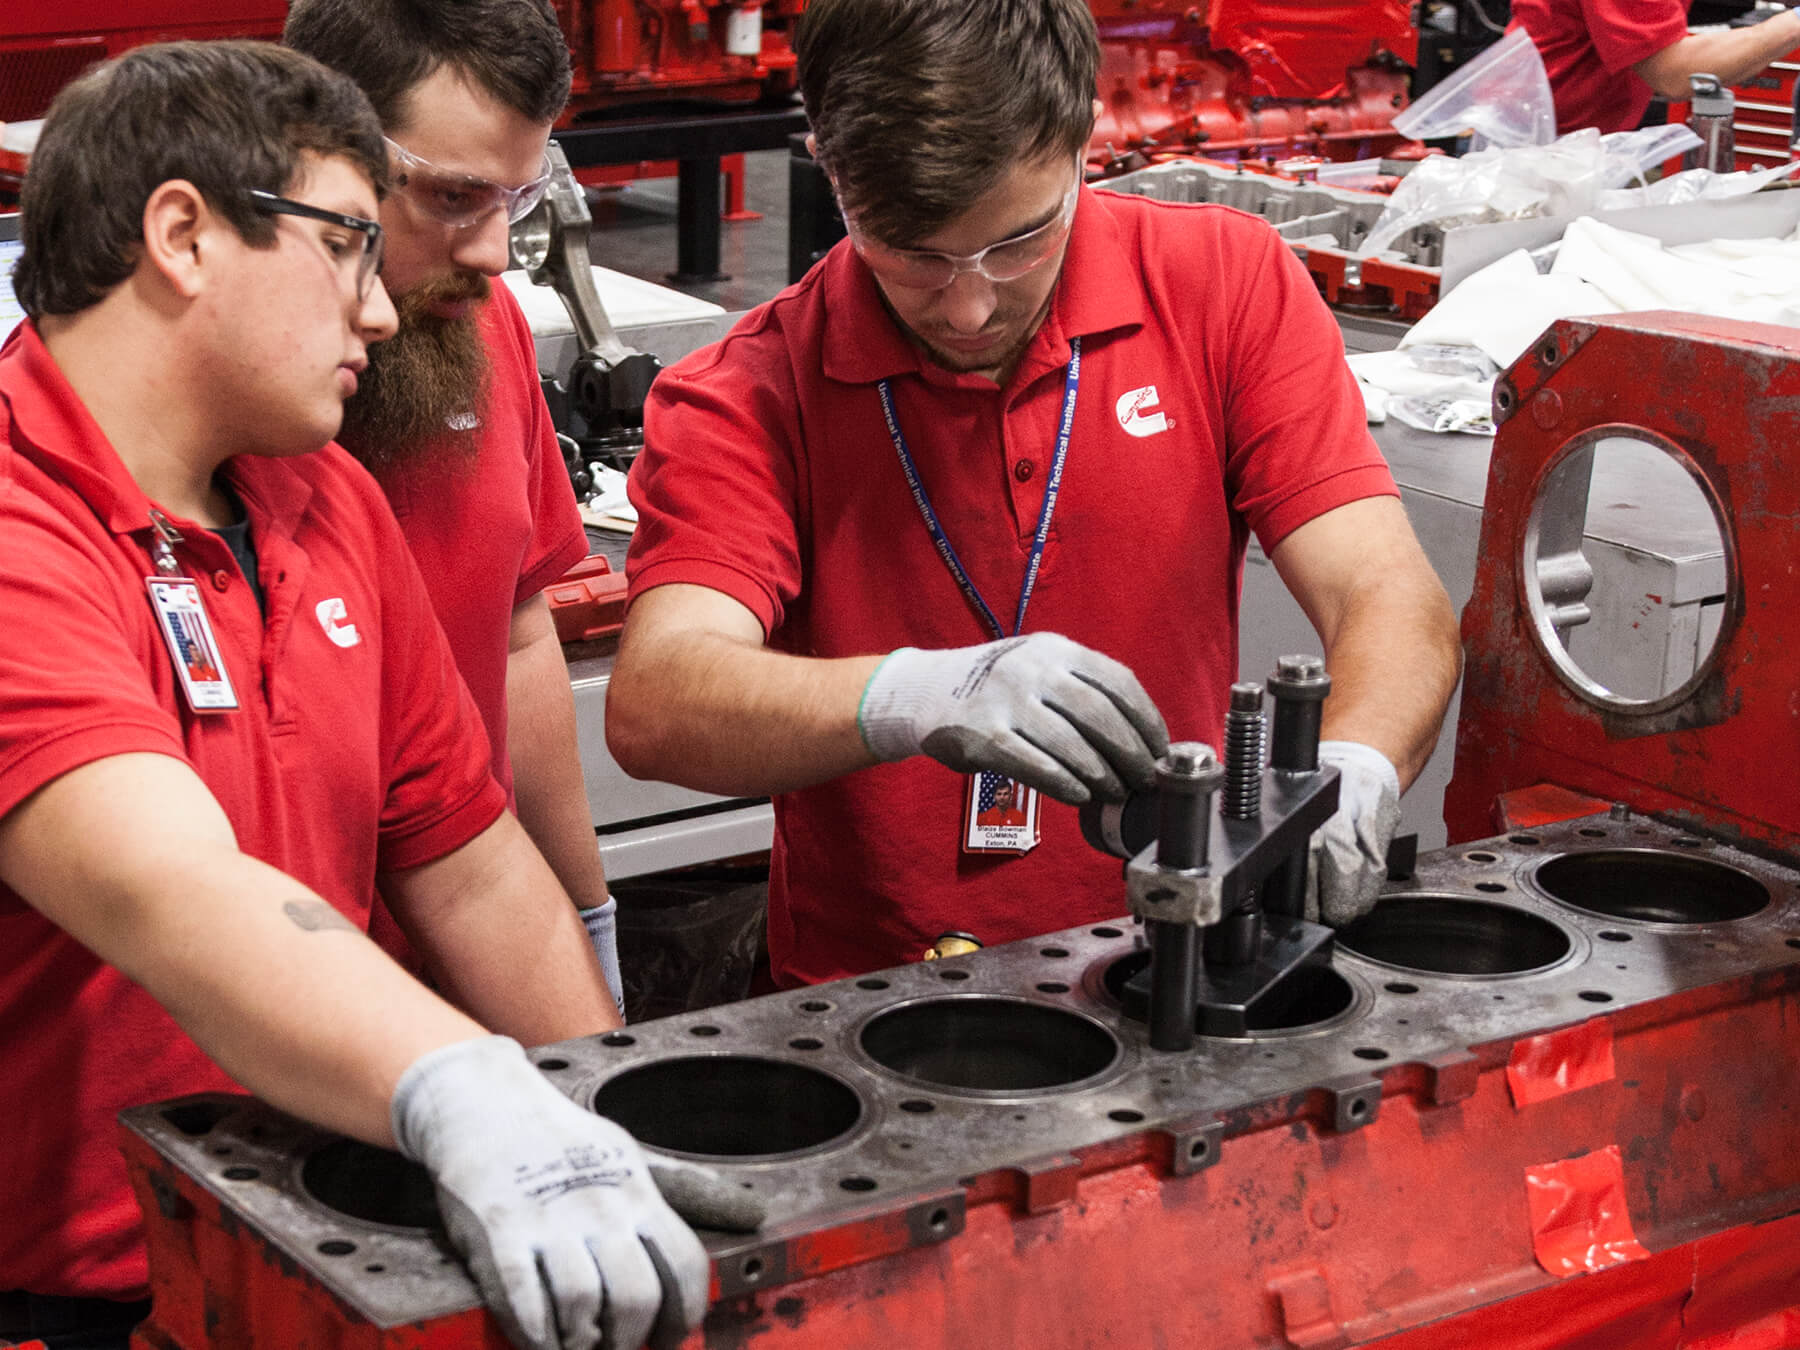 Cummins students working on a diesel engine in the Cummins lab at the Exton campus